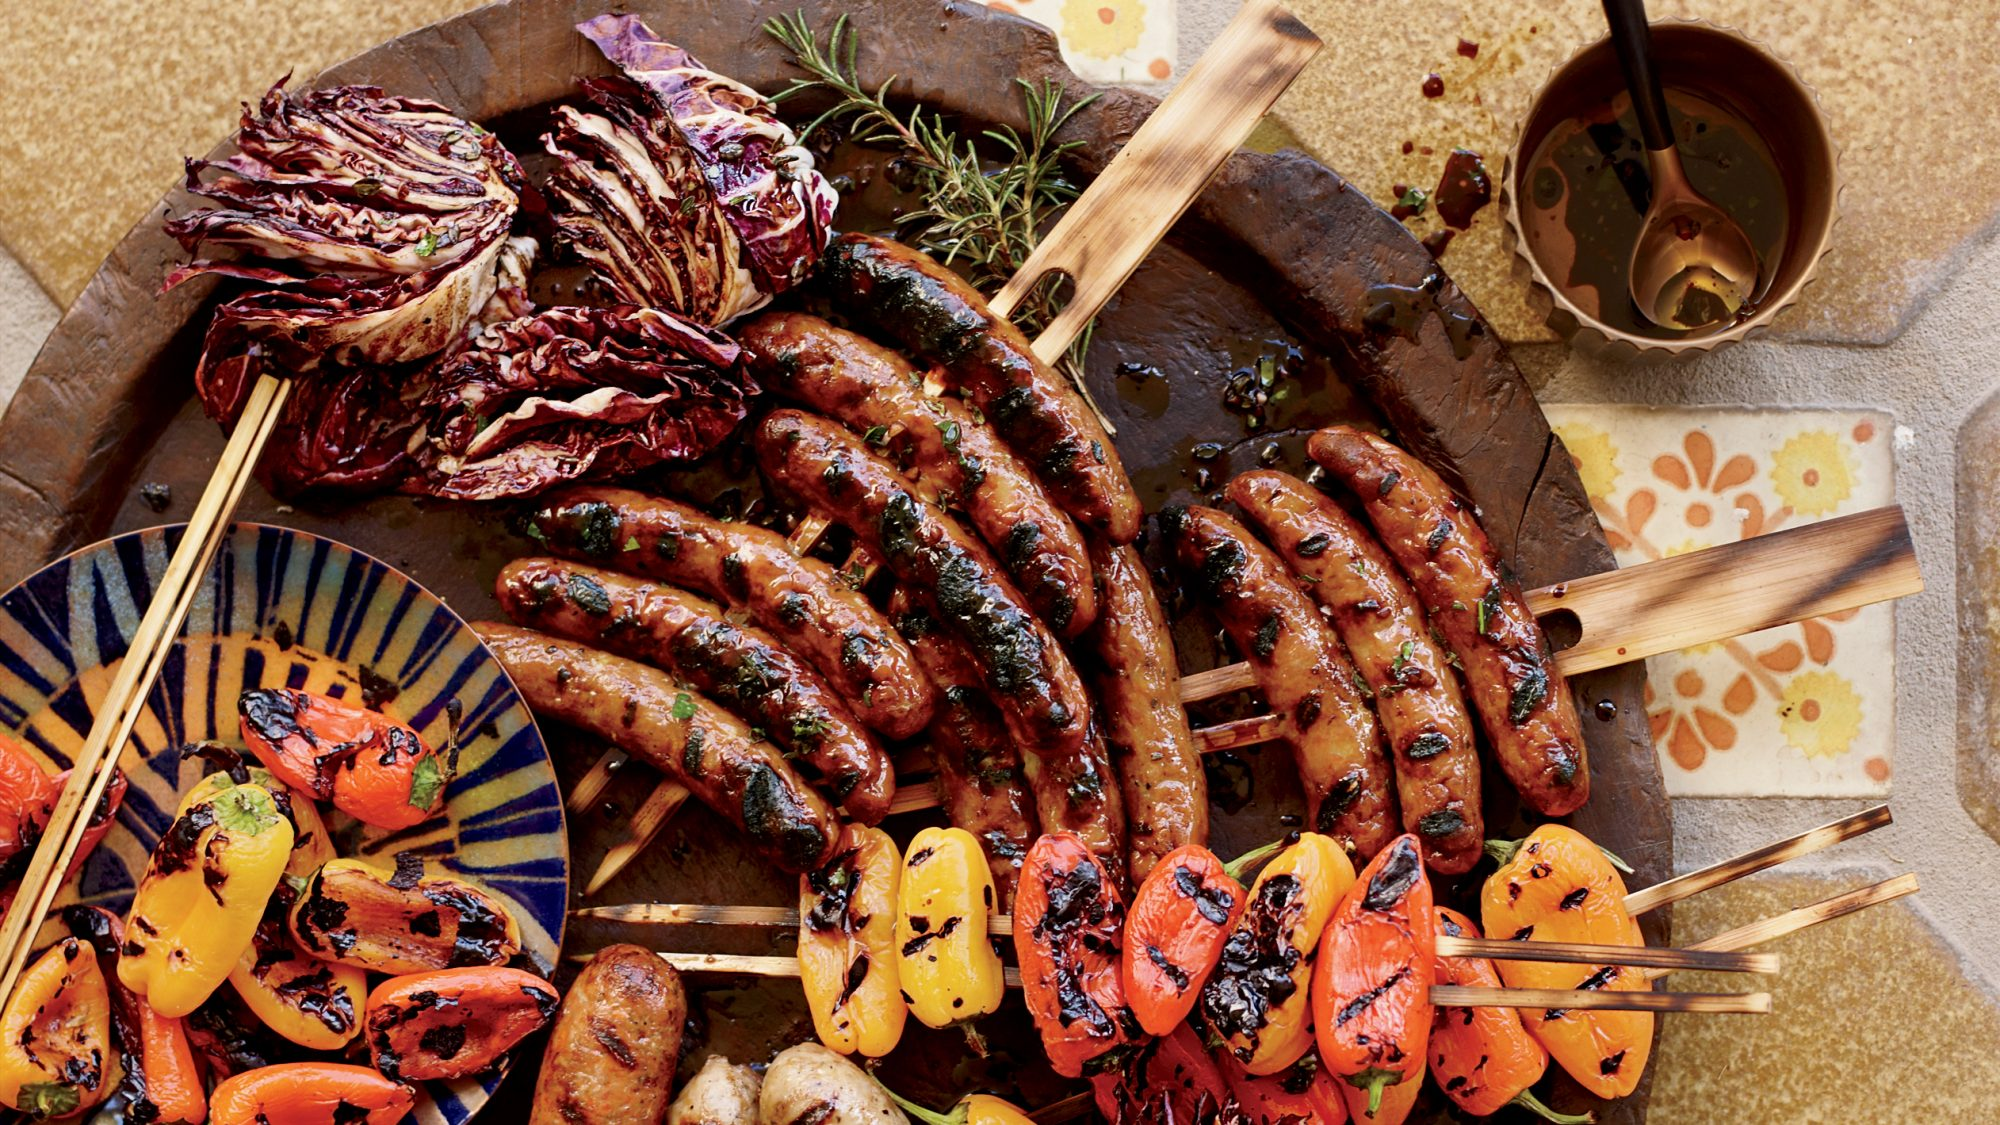 201006-FT-sausage-mixed-grill.jpg